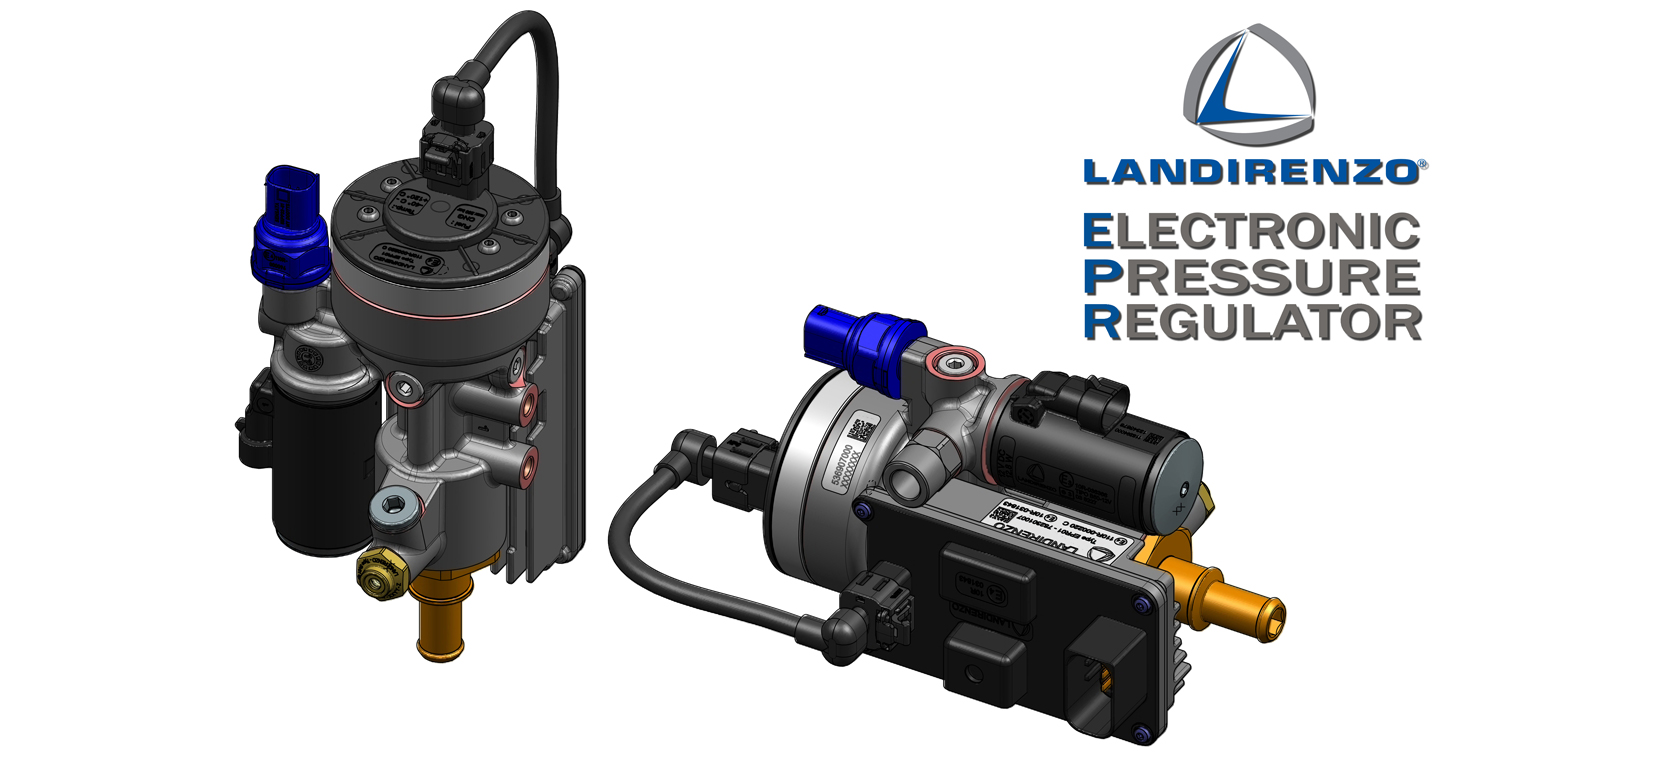 EPR - Landi Renzo's new pressure regulator